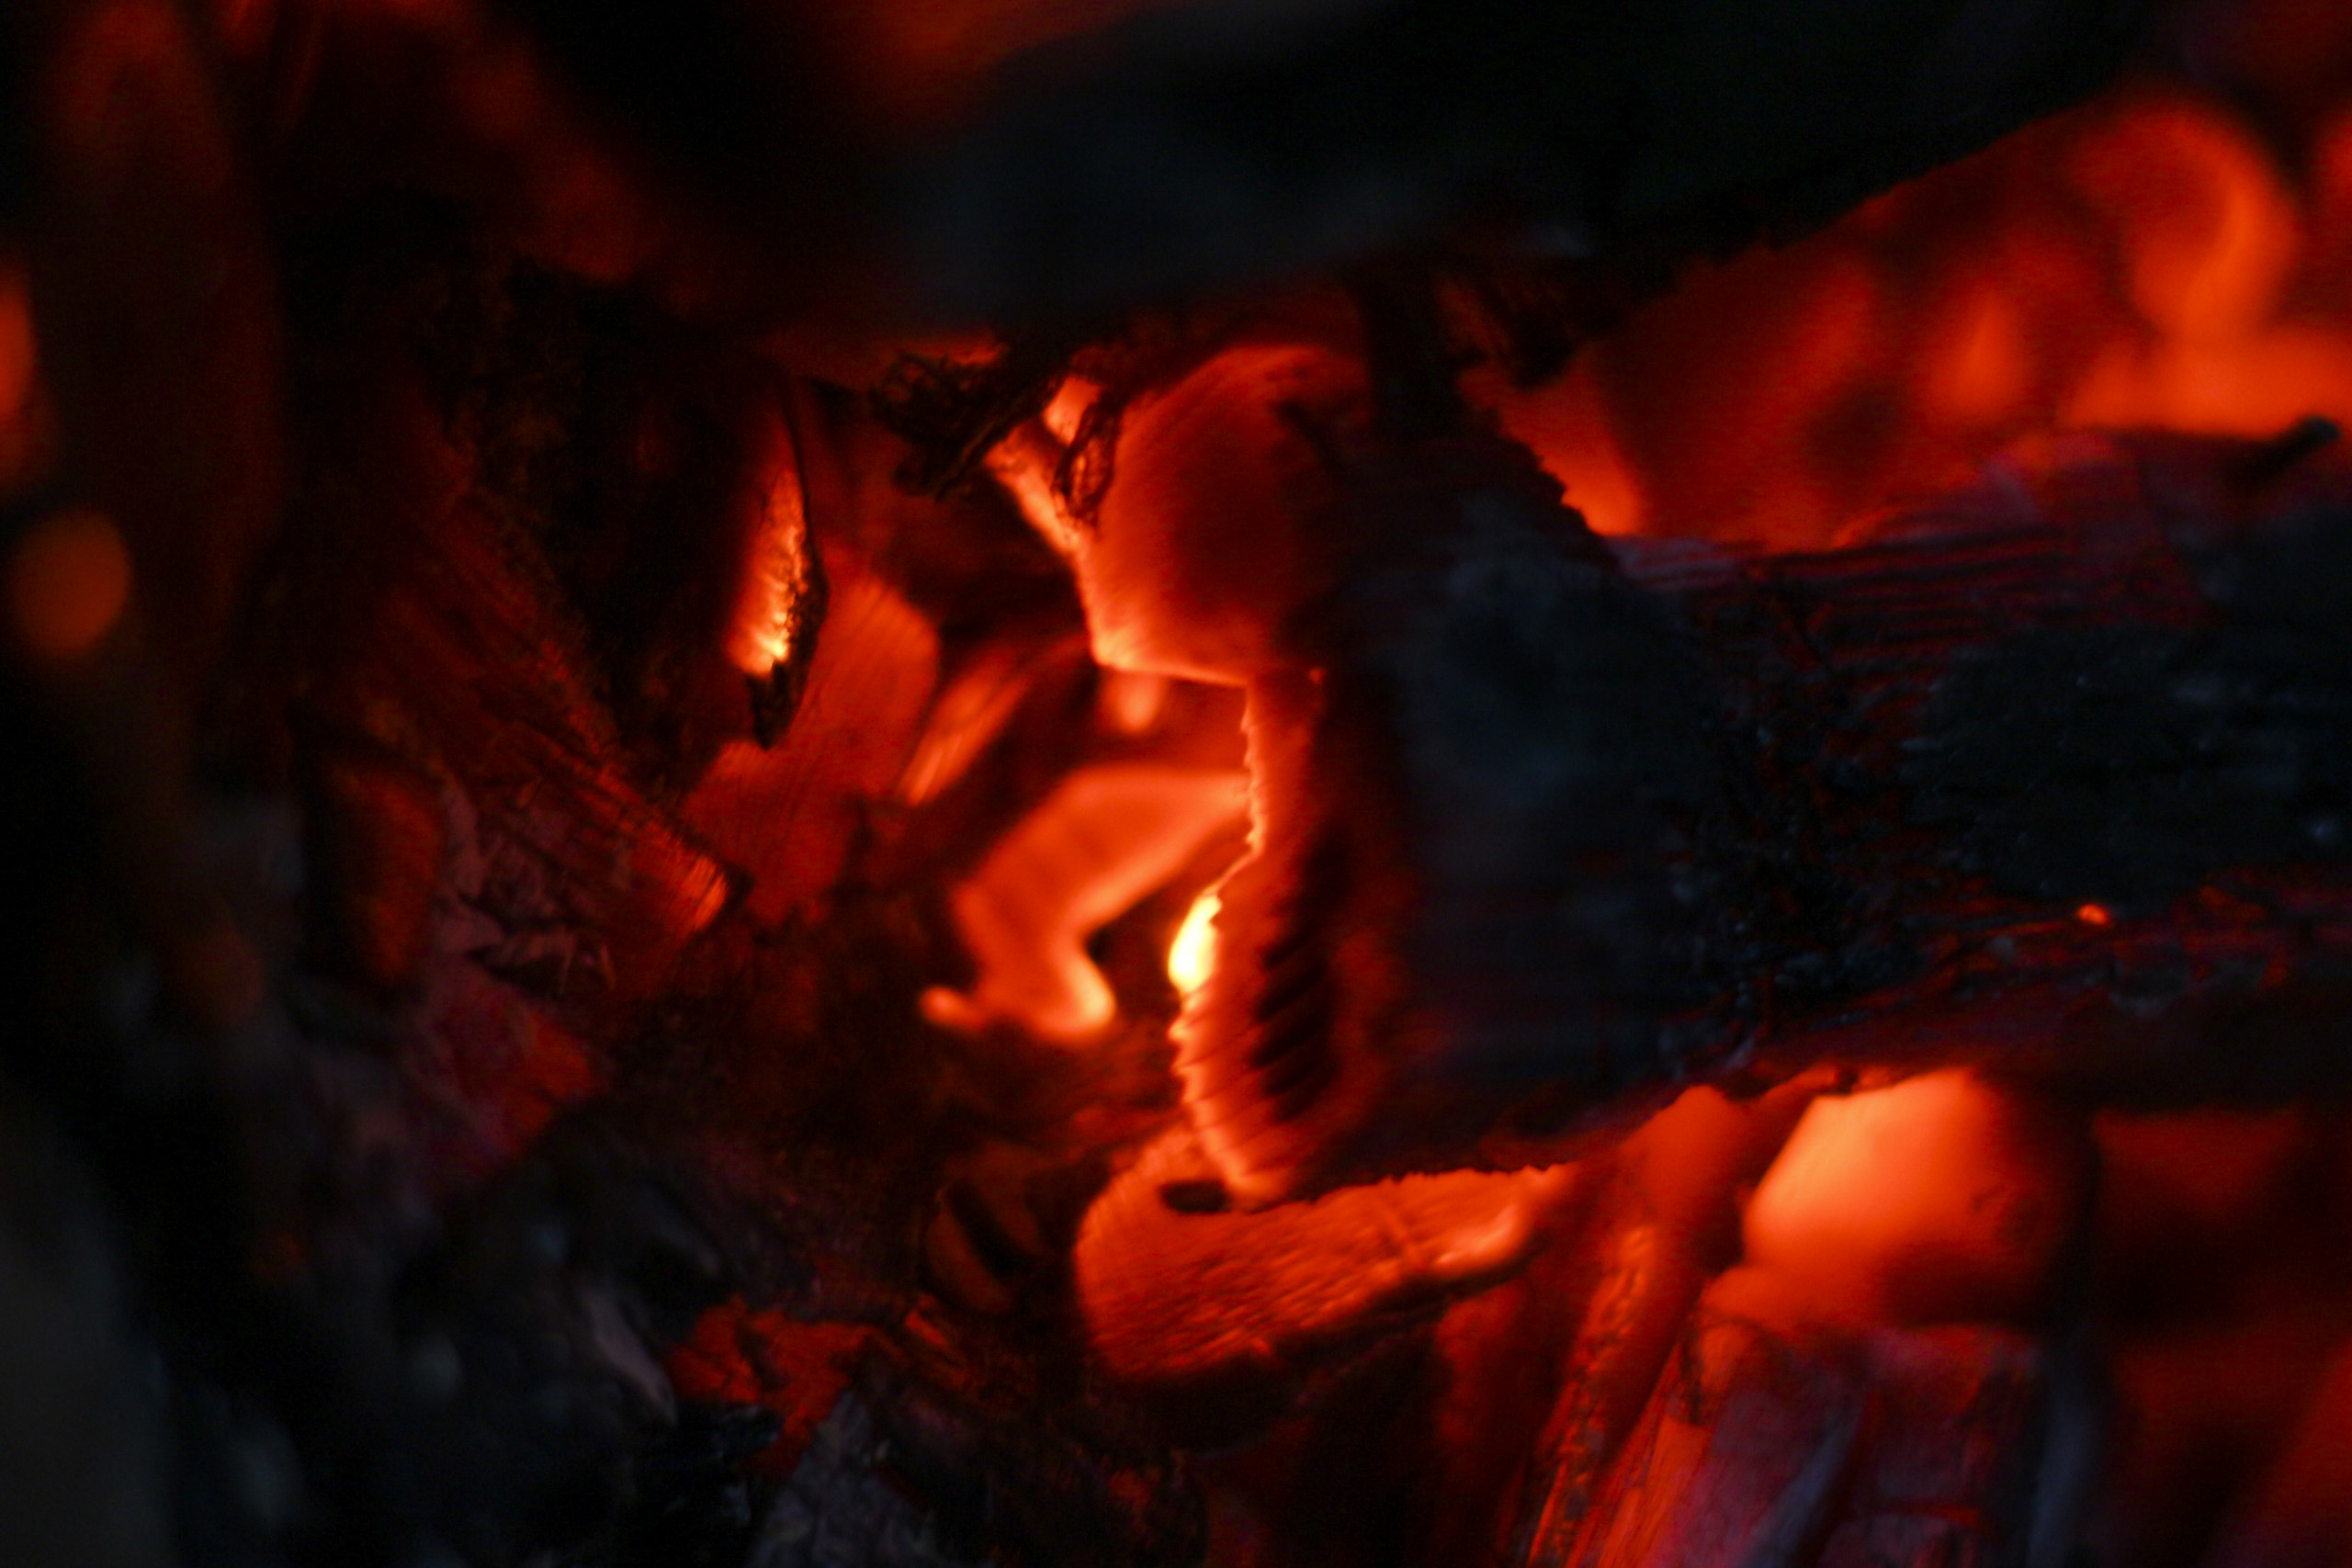 Close-up of Charcoal burning